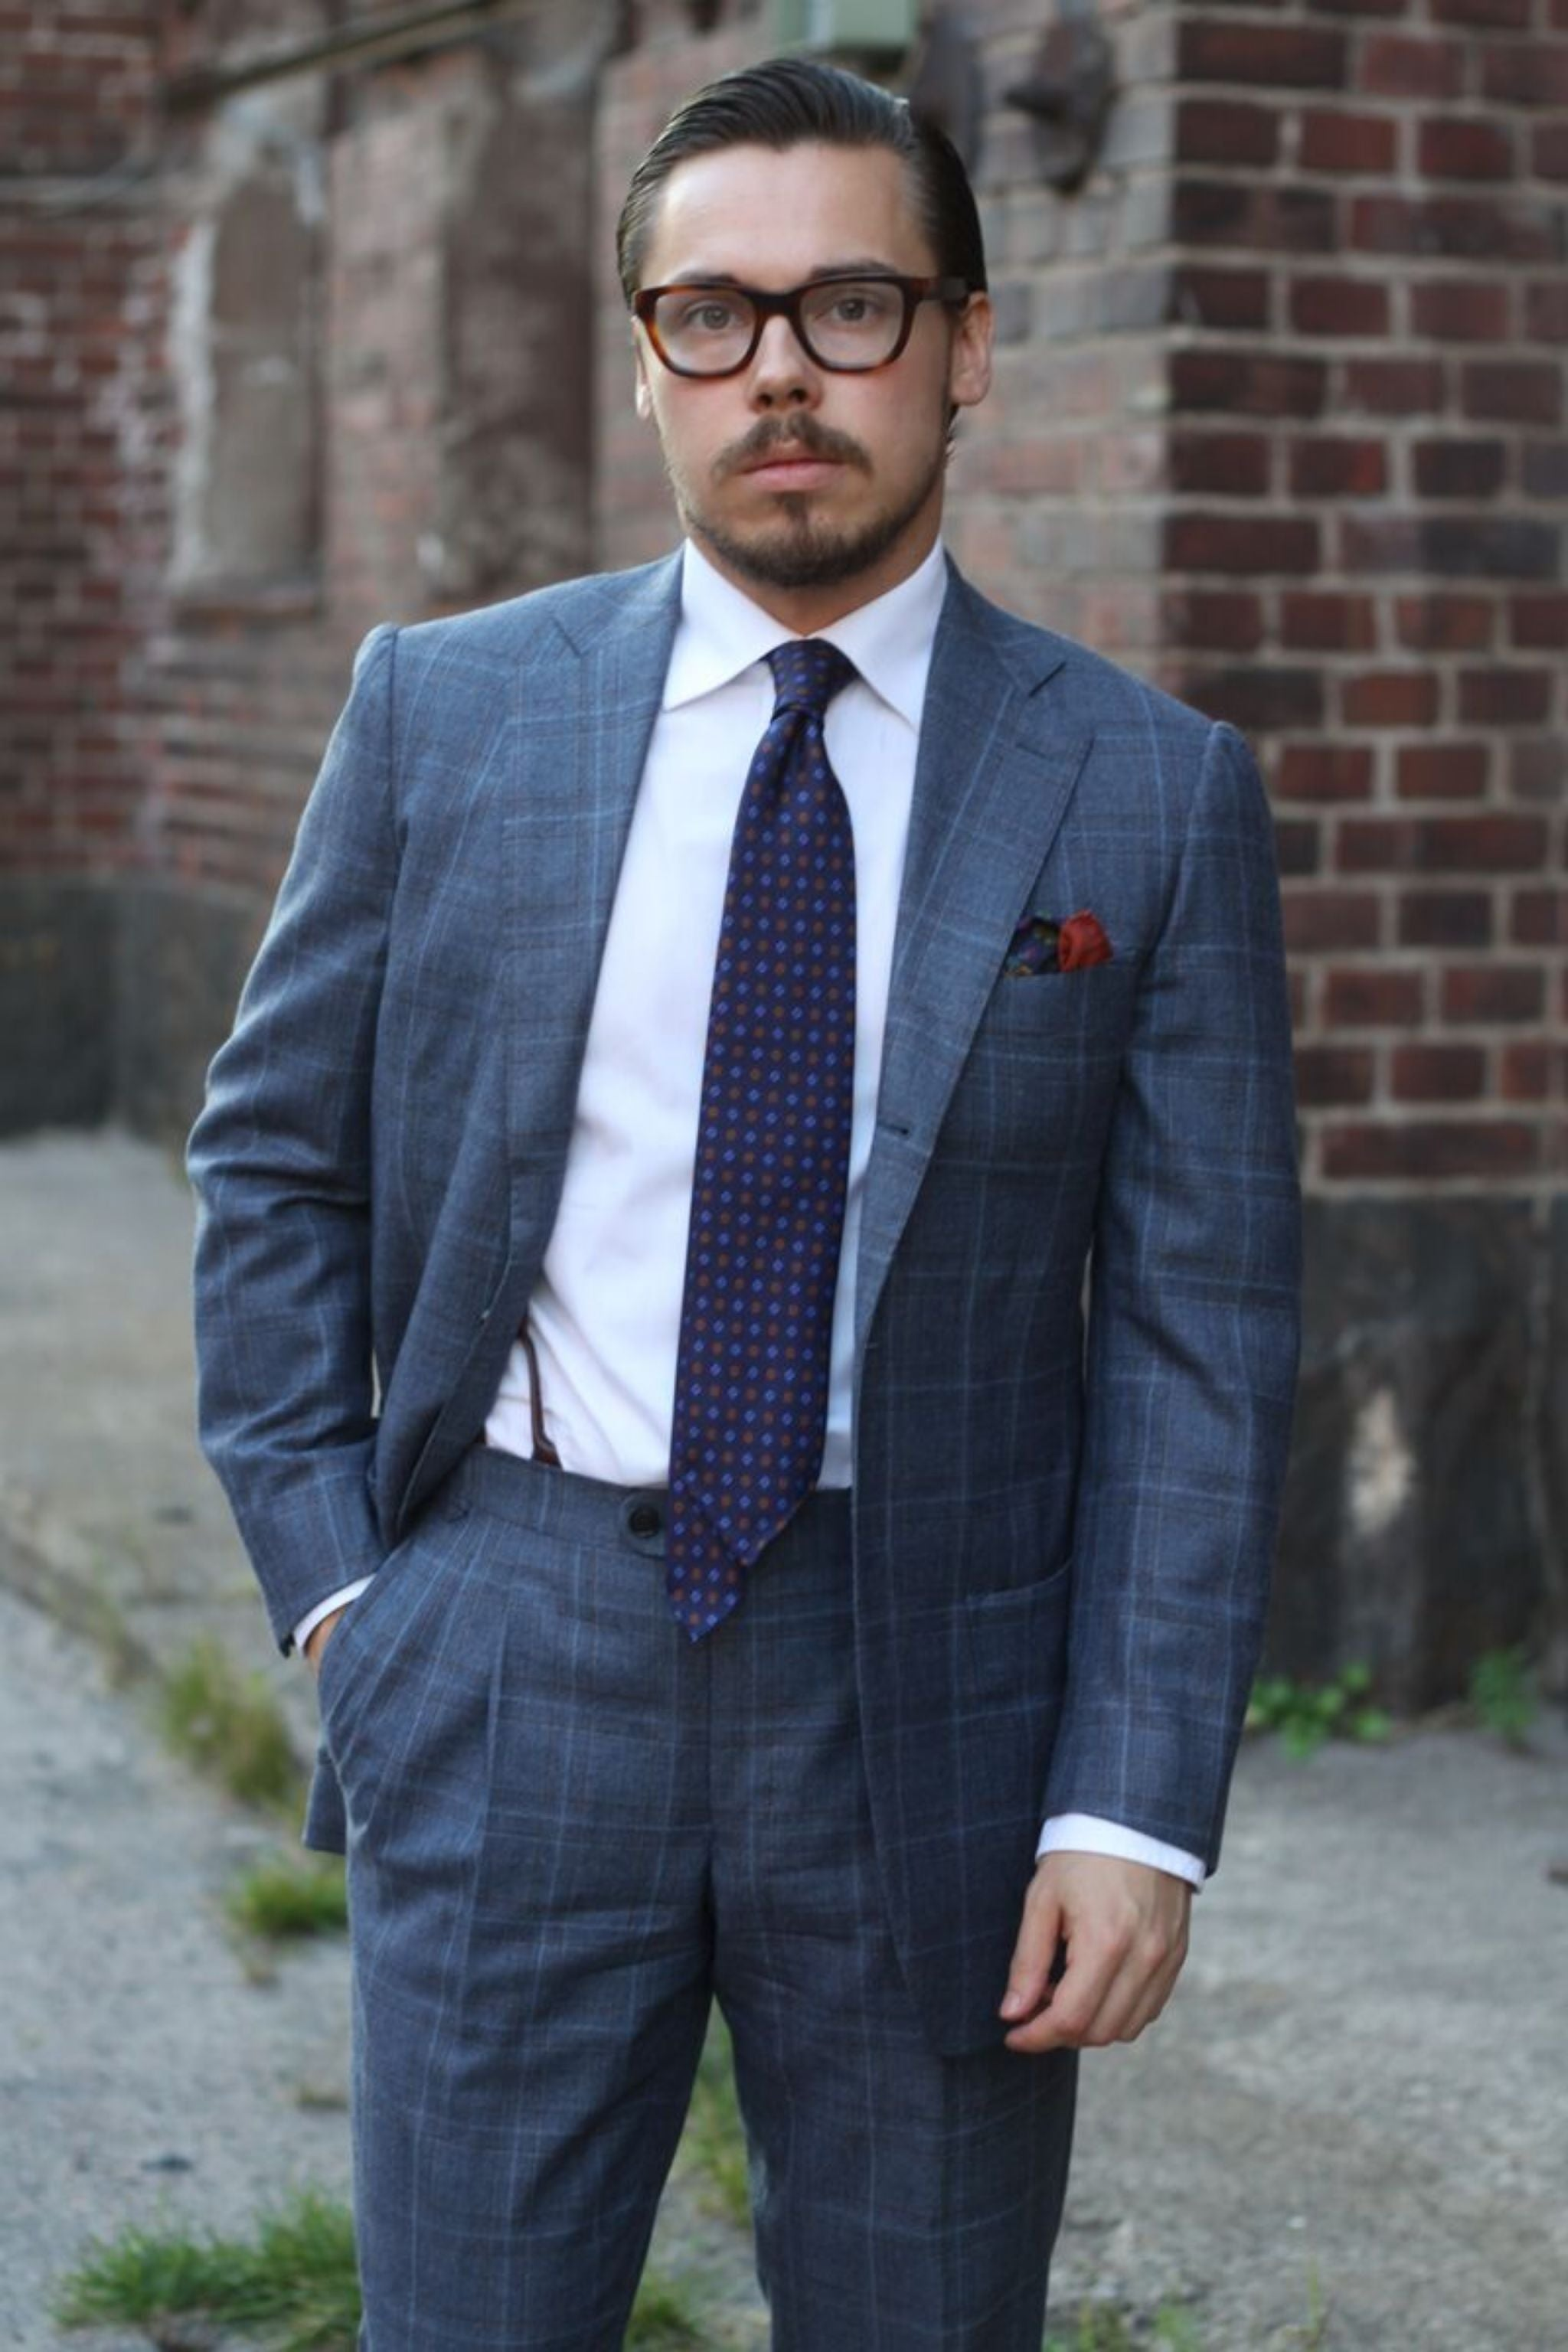 Patch pockets with business suit - Gray suit with white shirt and printed tie.